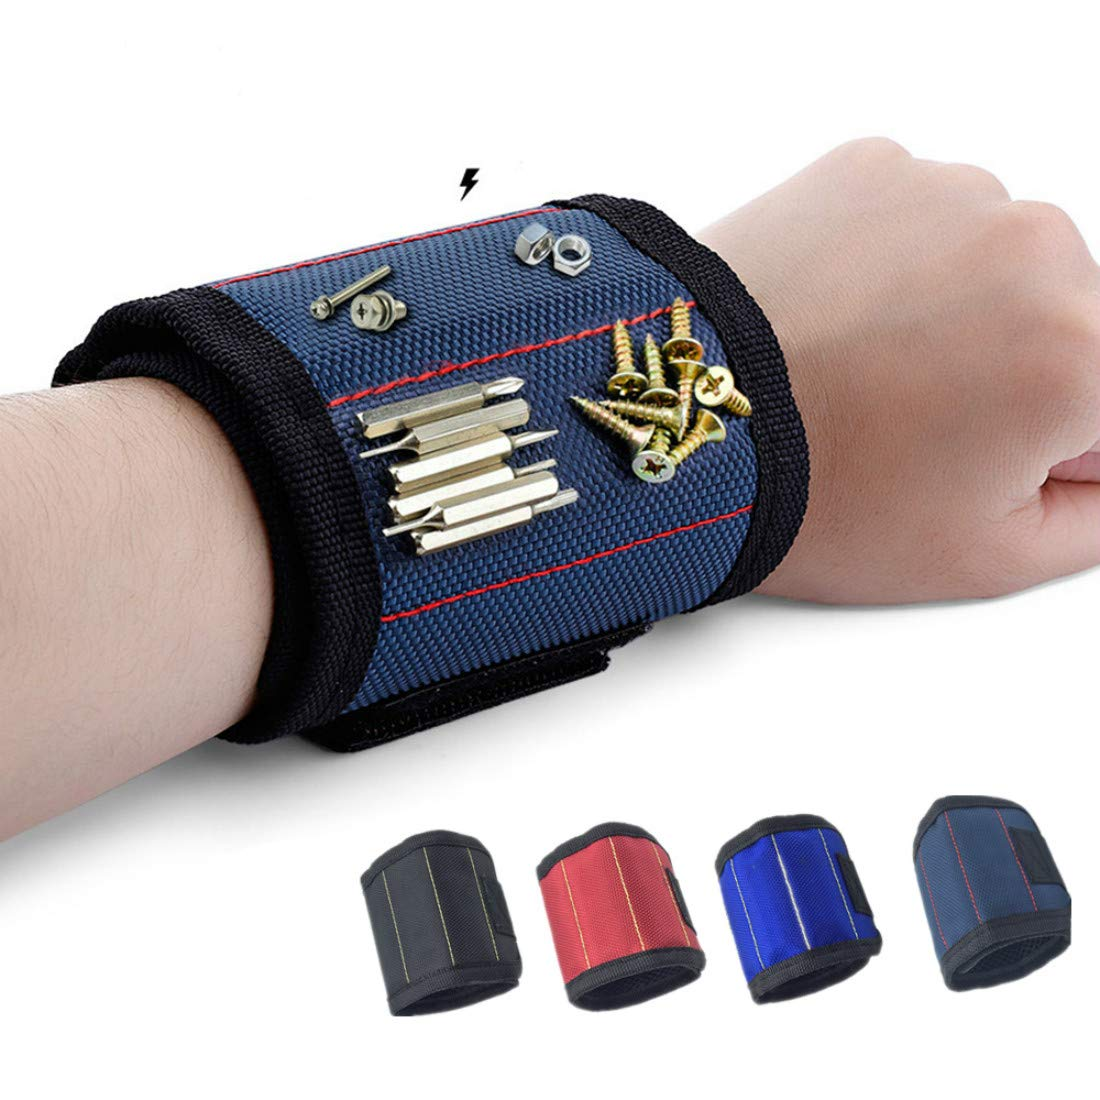 Magnetic Tool Wristband Holding Tools